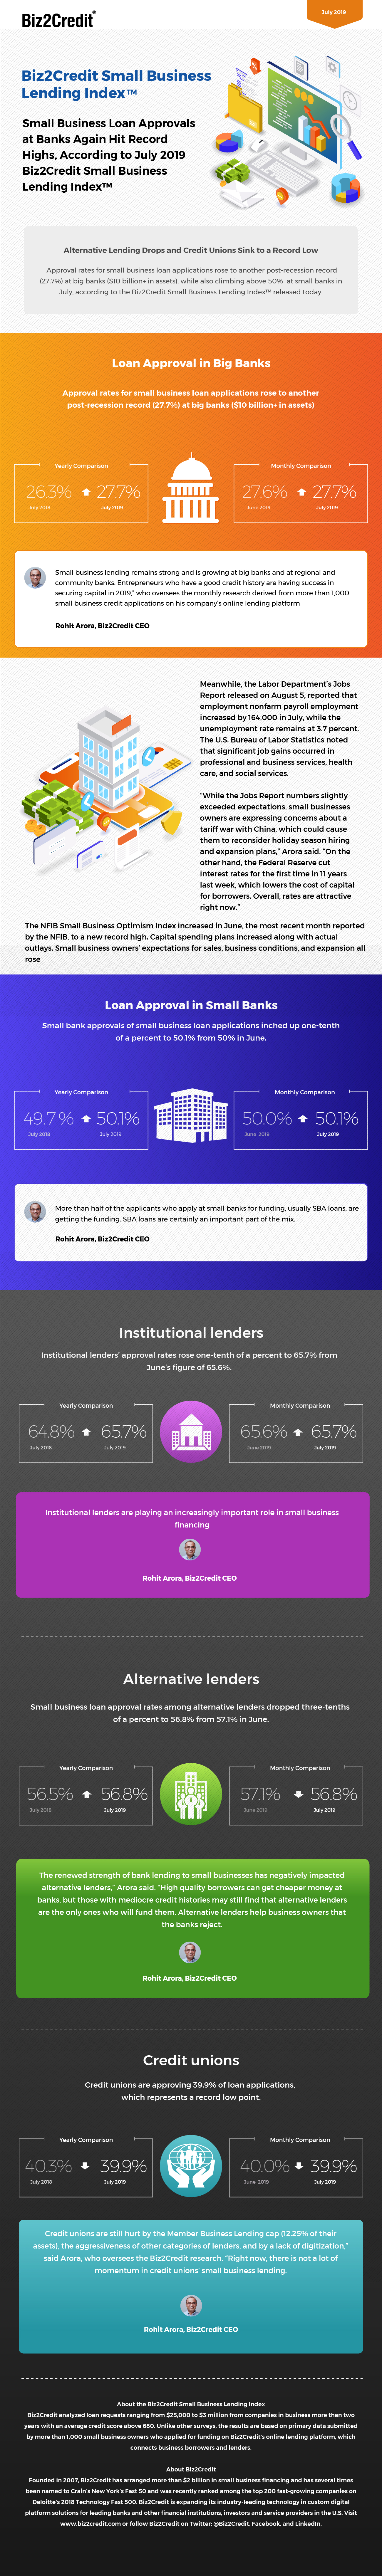 July 2019 Lending Index Infographic